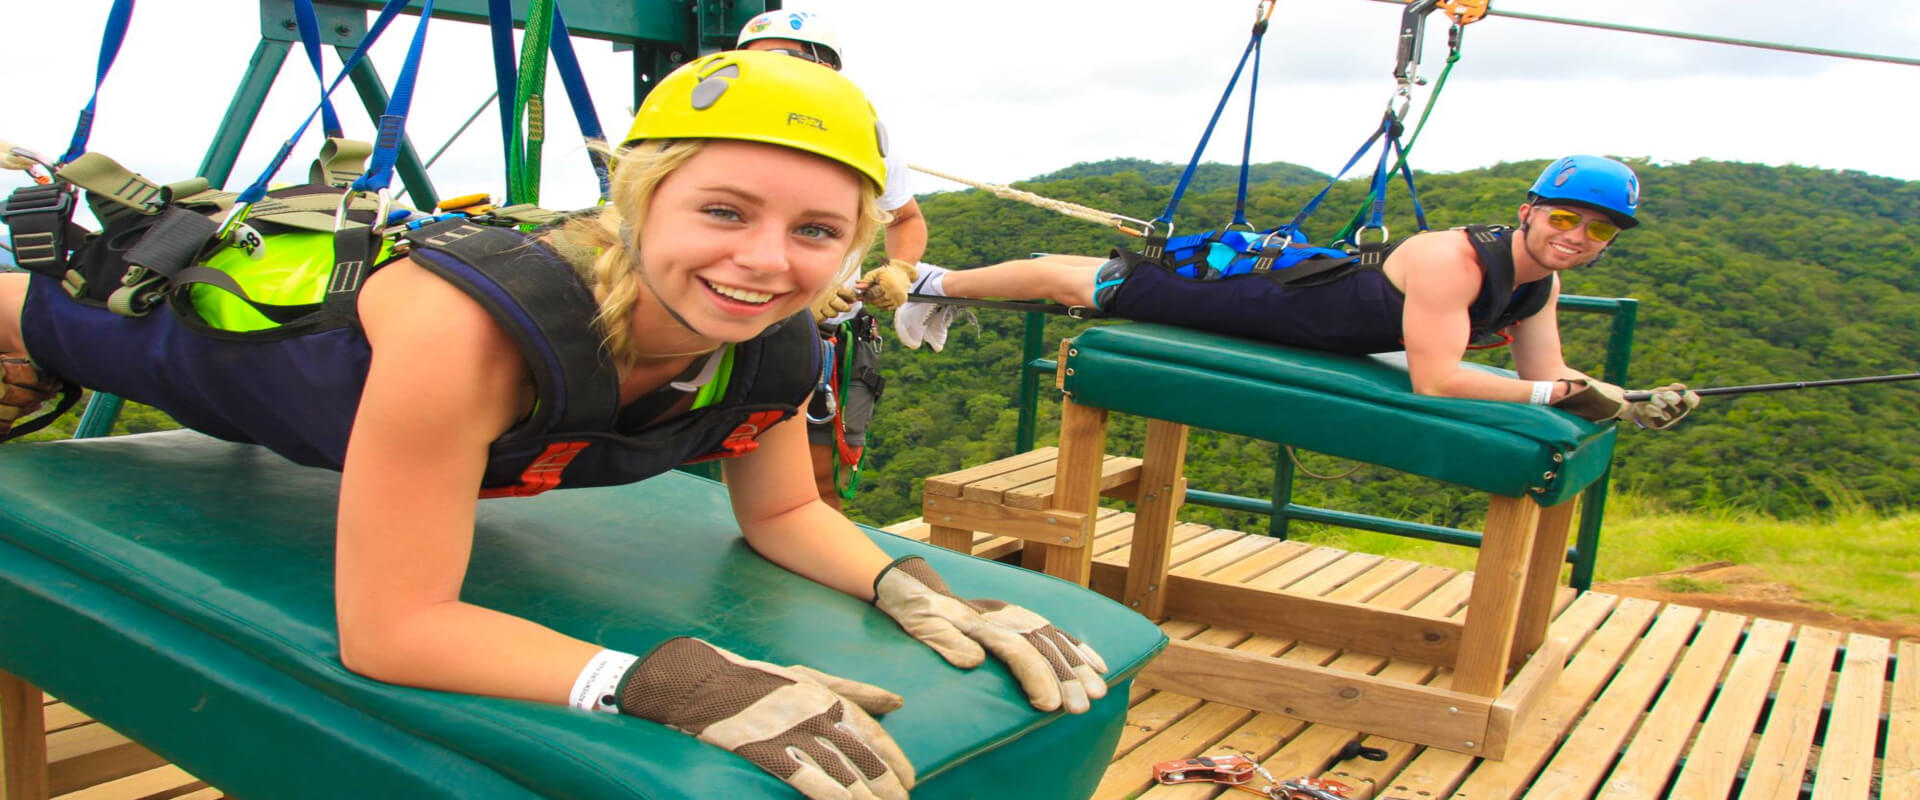 Diamante Adventure Park - Pase Aventura | Costa Rica Jade Tours